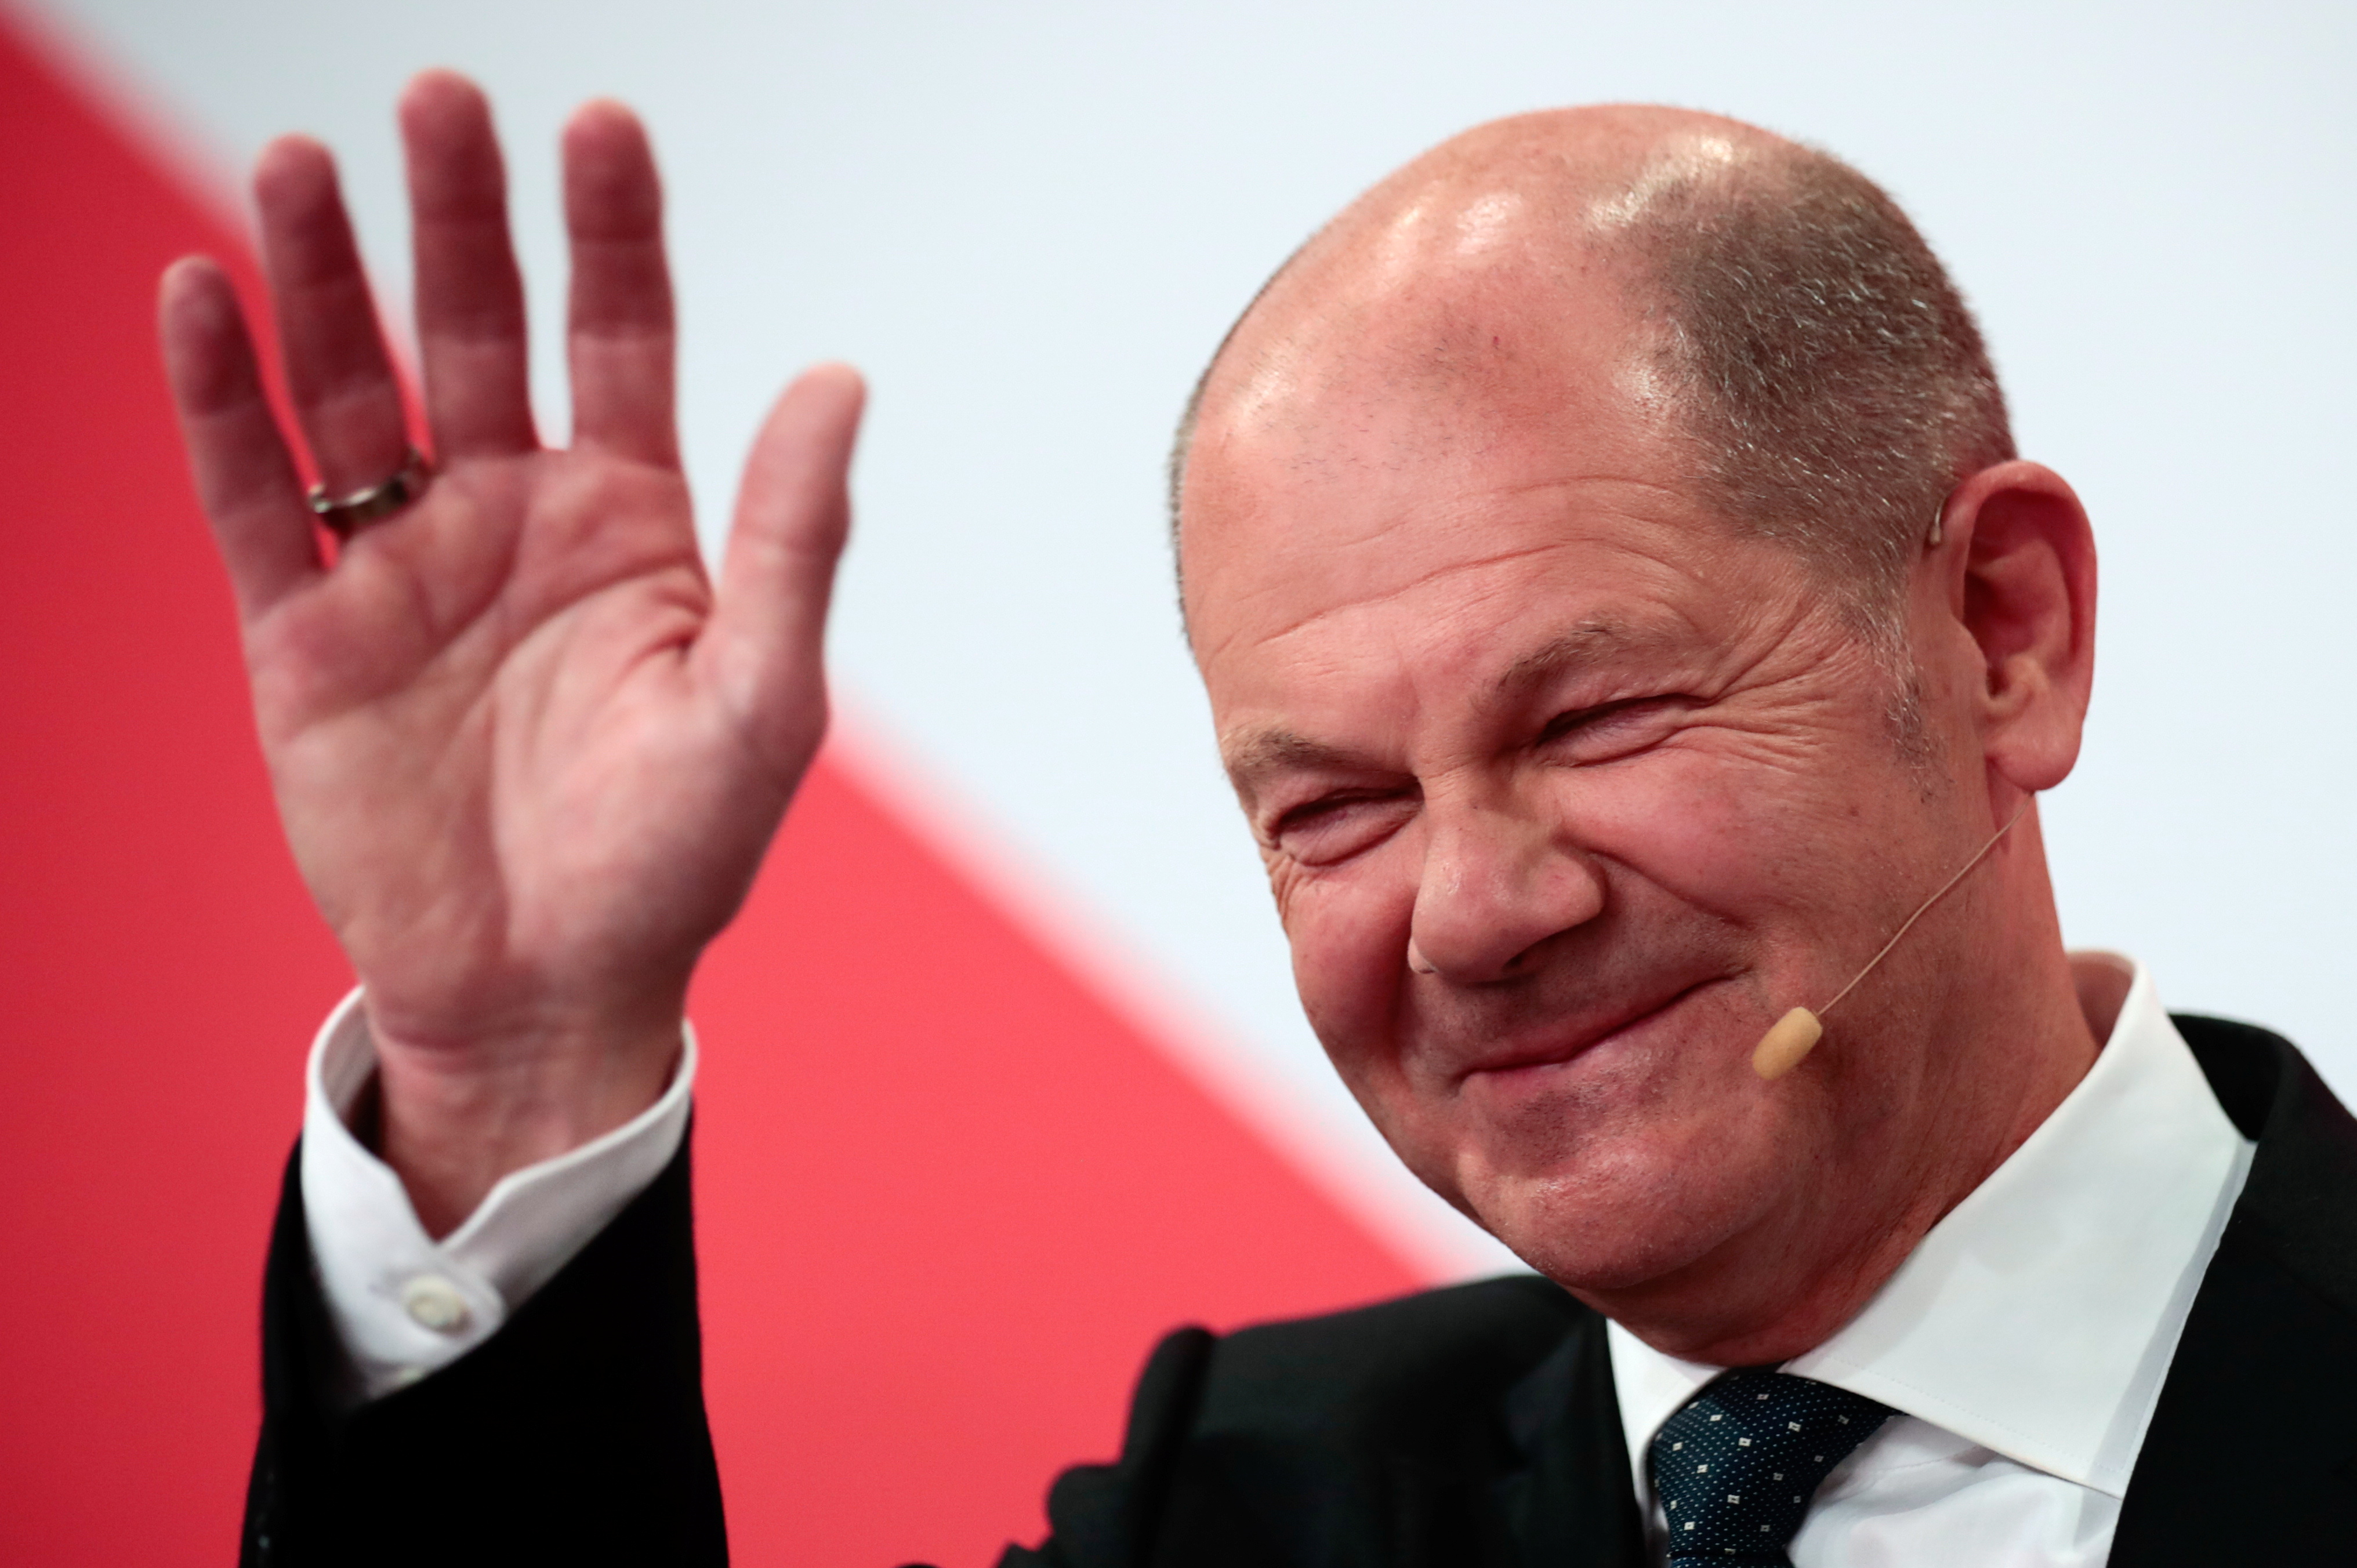 Social Democratic Party (SPD) leader and top candidate for chancellor Olaf Scholz waves after first exit polls for the general elections in Berlin, Germany, September 26, 2021.    REUTERS/Hannibal Hanschke